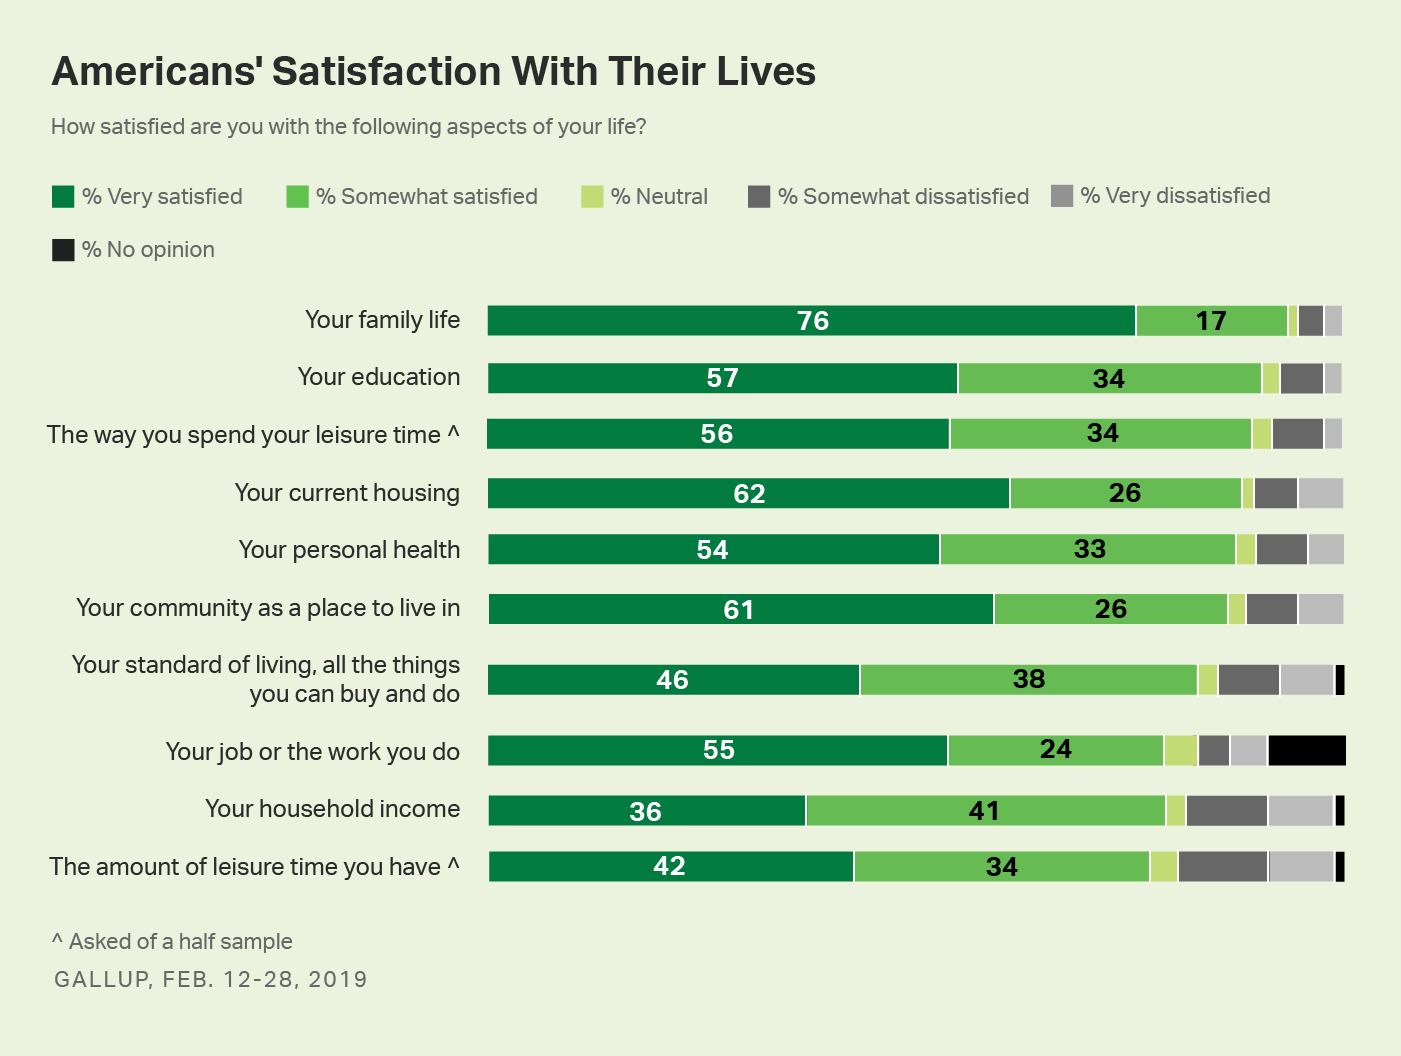 Bar chart. Americans' satisfaction with 10 life aspects related to their finances, lifestyle, opportunities and social life.